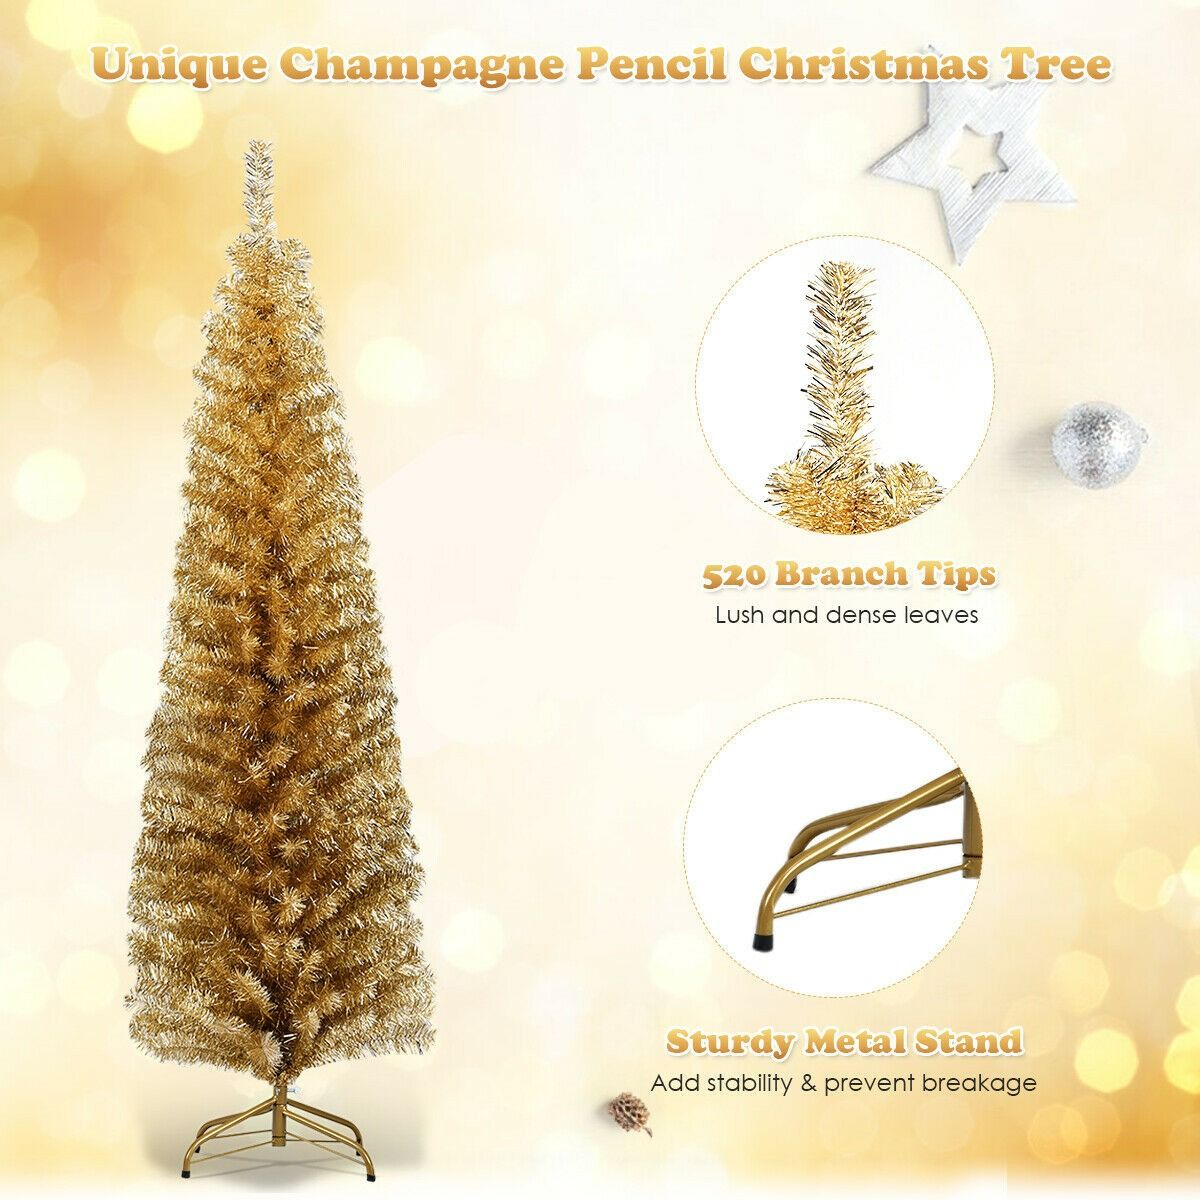 6 Ft Tinsel Tree Unlit Slim Pencil Christmas Tree 35 95 Free Shipping This 6ft Slim Christmas Tree Whic Pencil Christmas Tree Tinsel Tree Silver Tinsel Tree